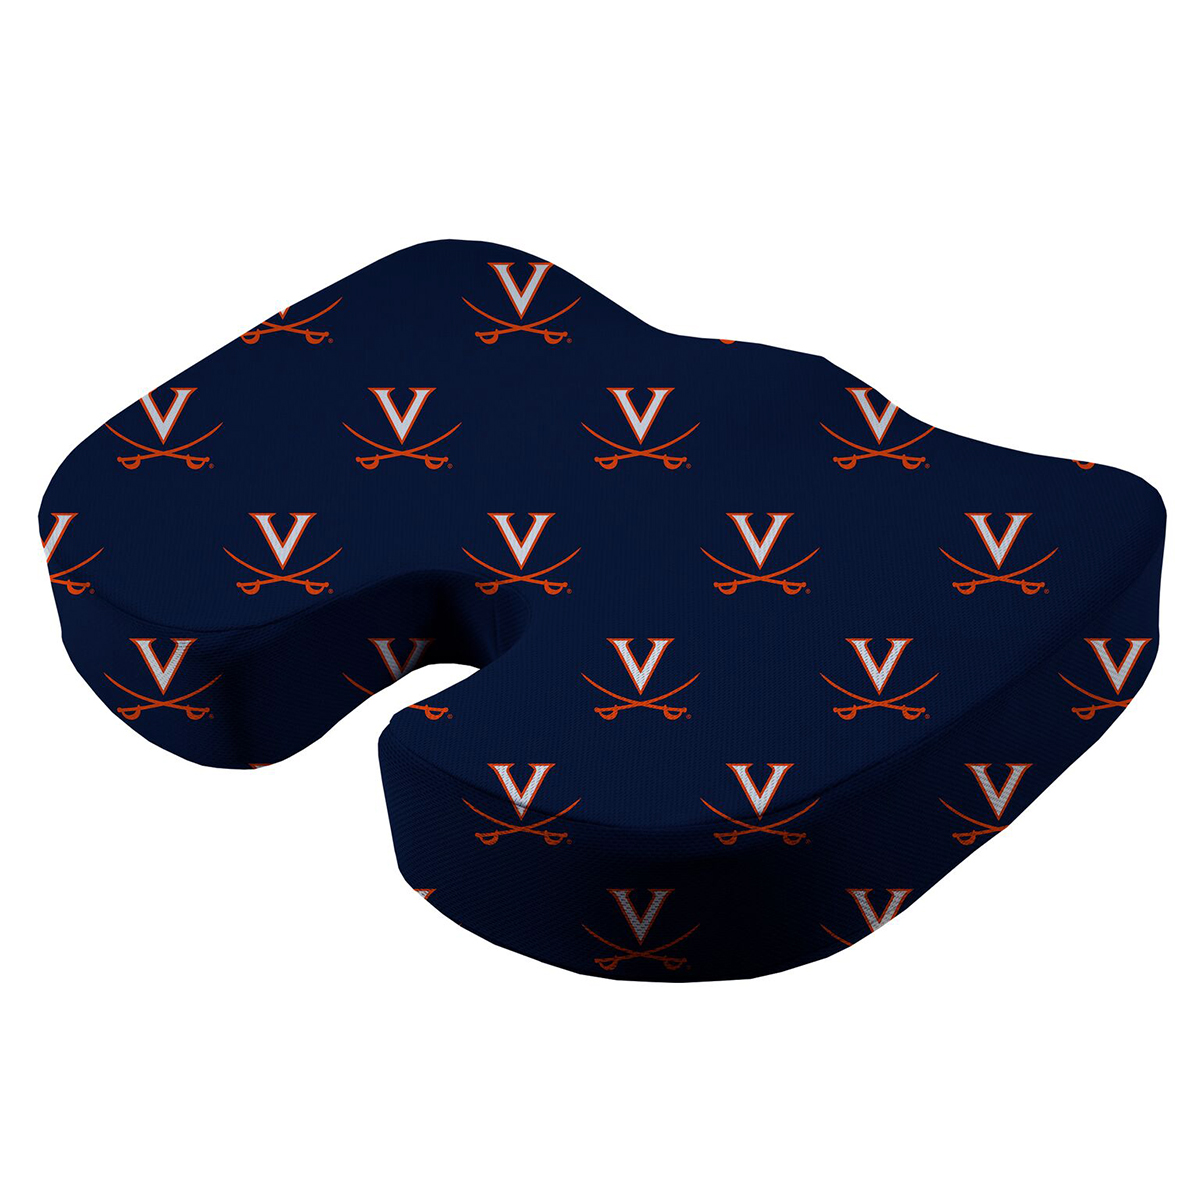 University of Virginia Memory Foam Seat Cushion